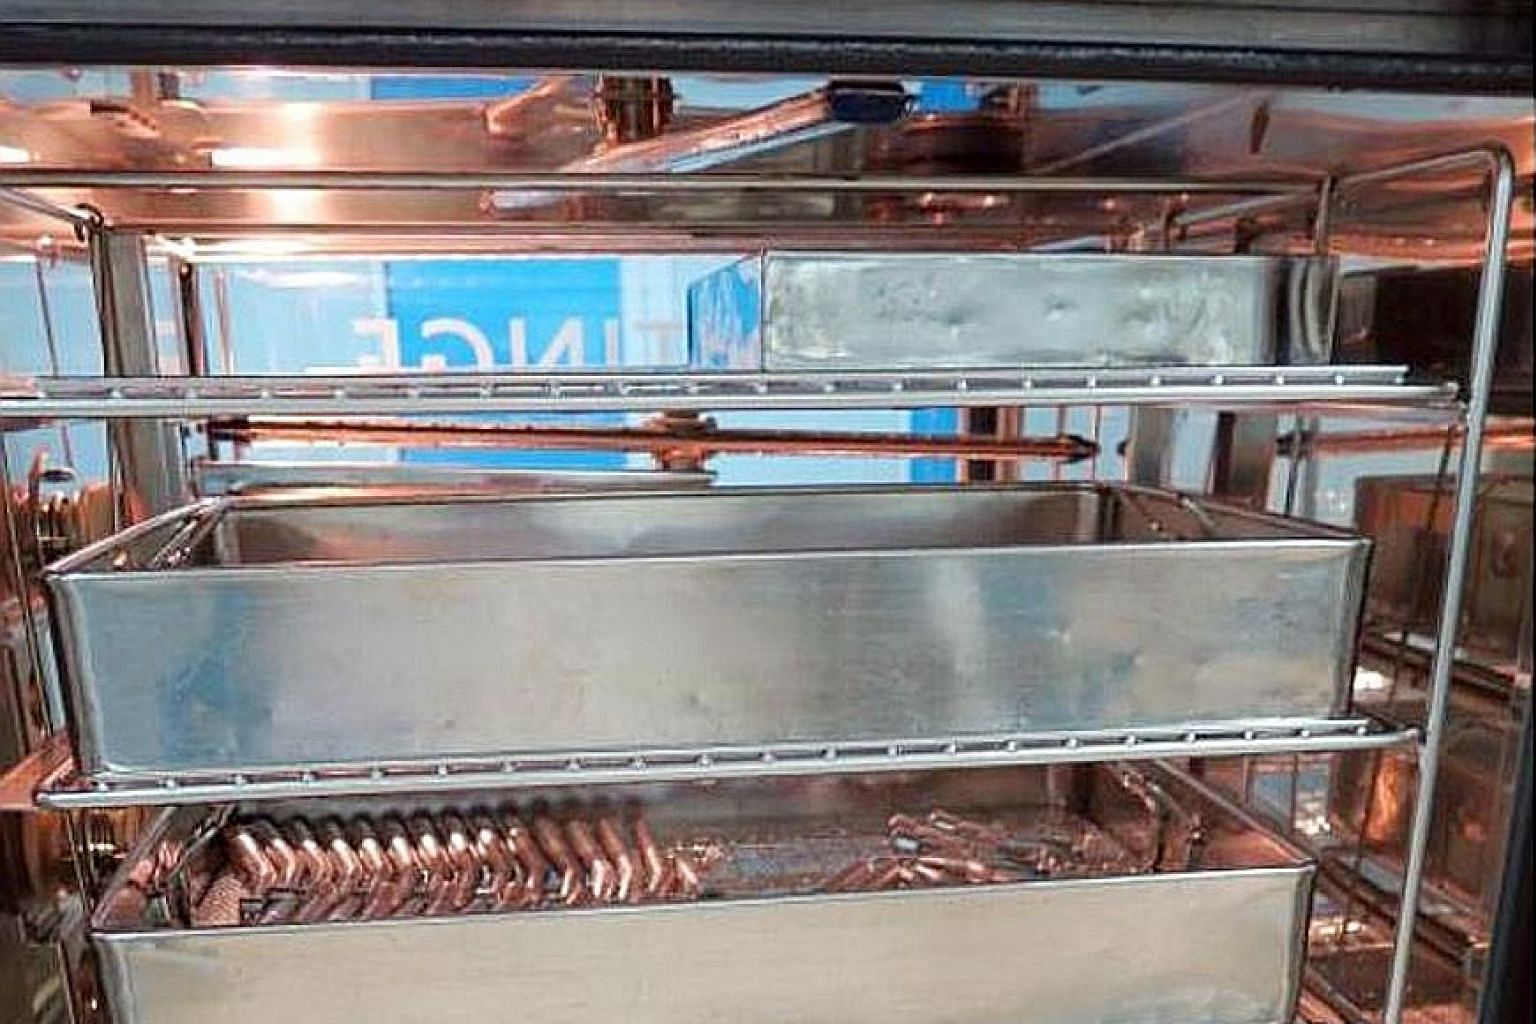 The first two steps of the sterilisation process take place in a thermal disinfector, where dental instruments are washed and then thermally disinfected through a process that removes close to 100 per cent of organisms. Thermal disinfection takes pla